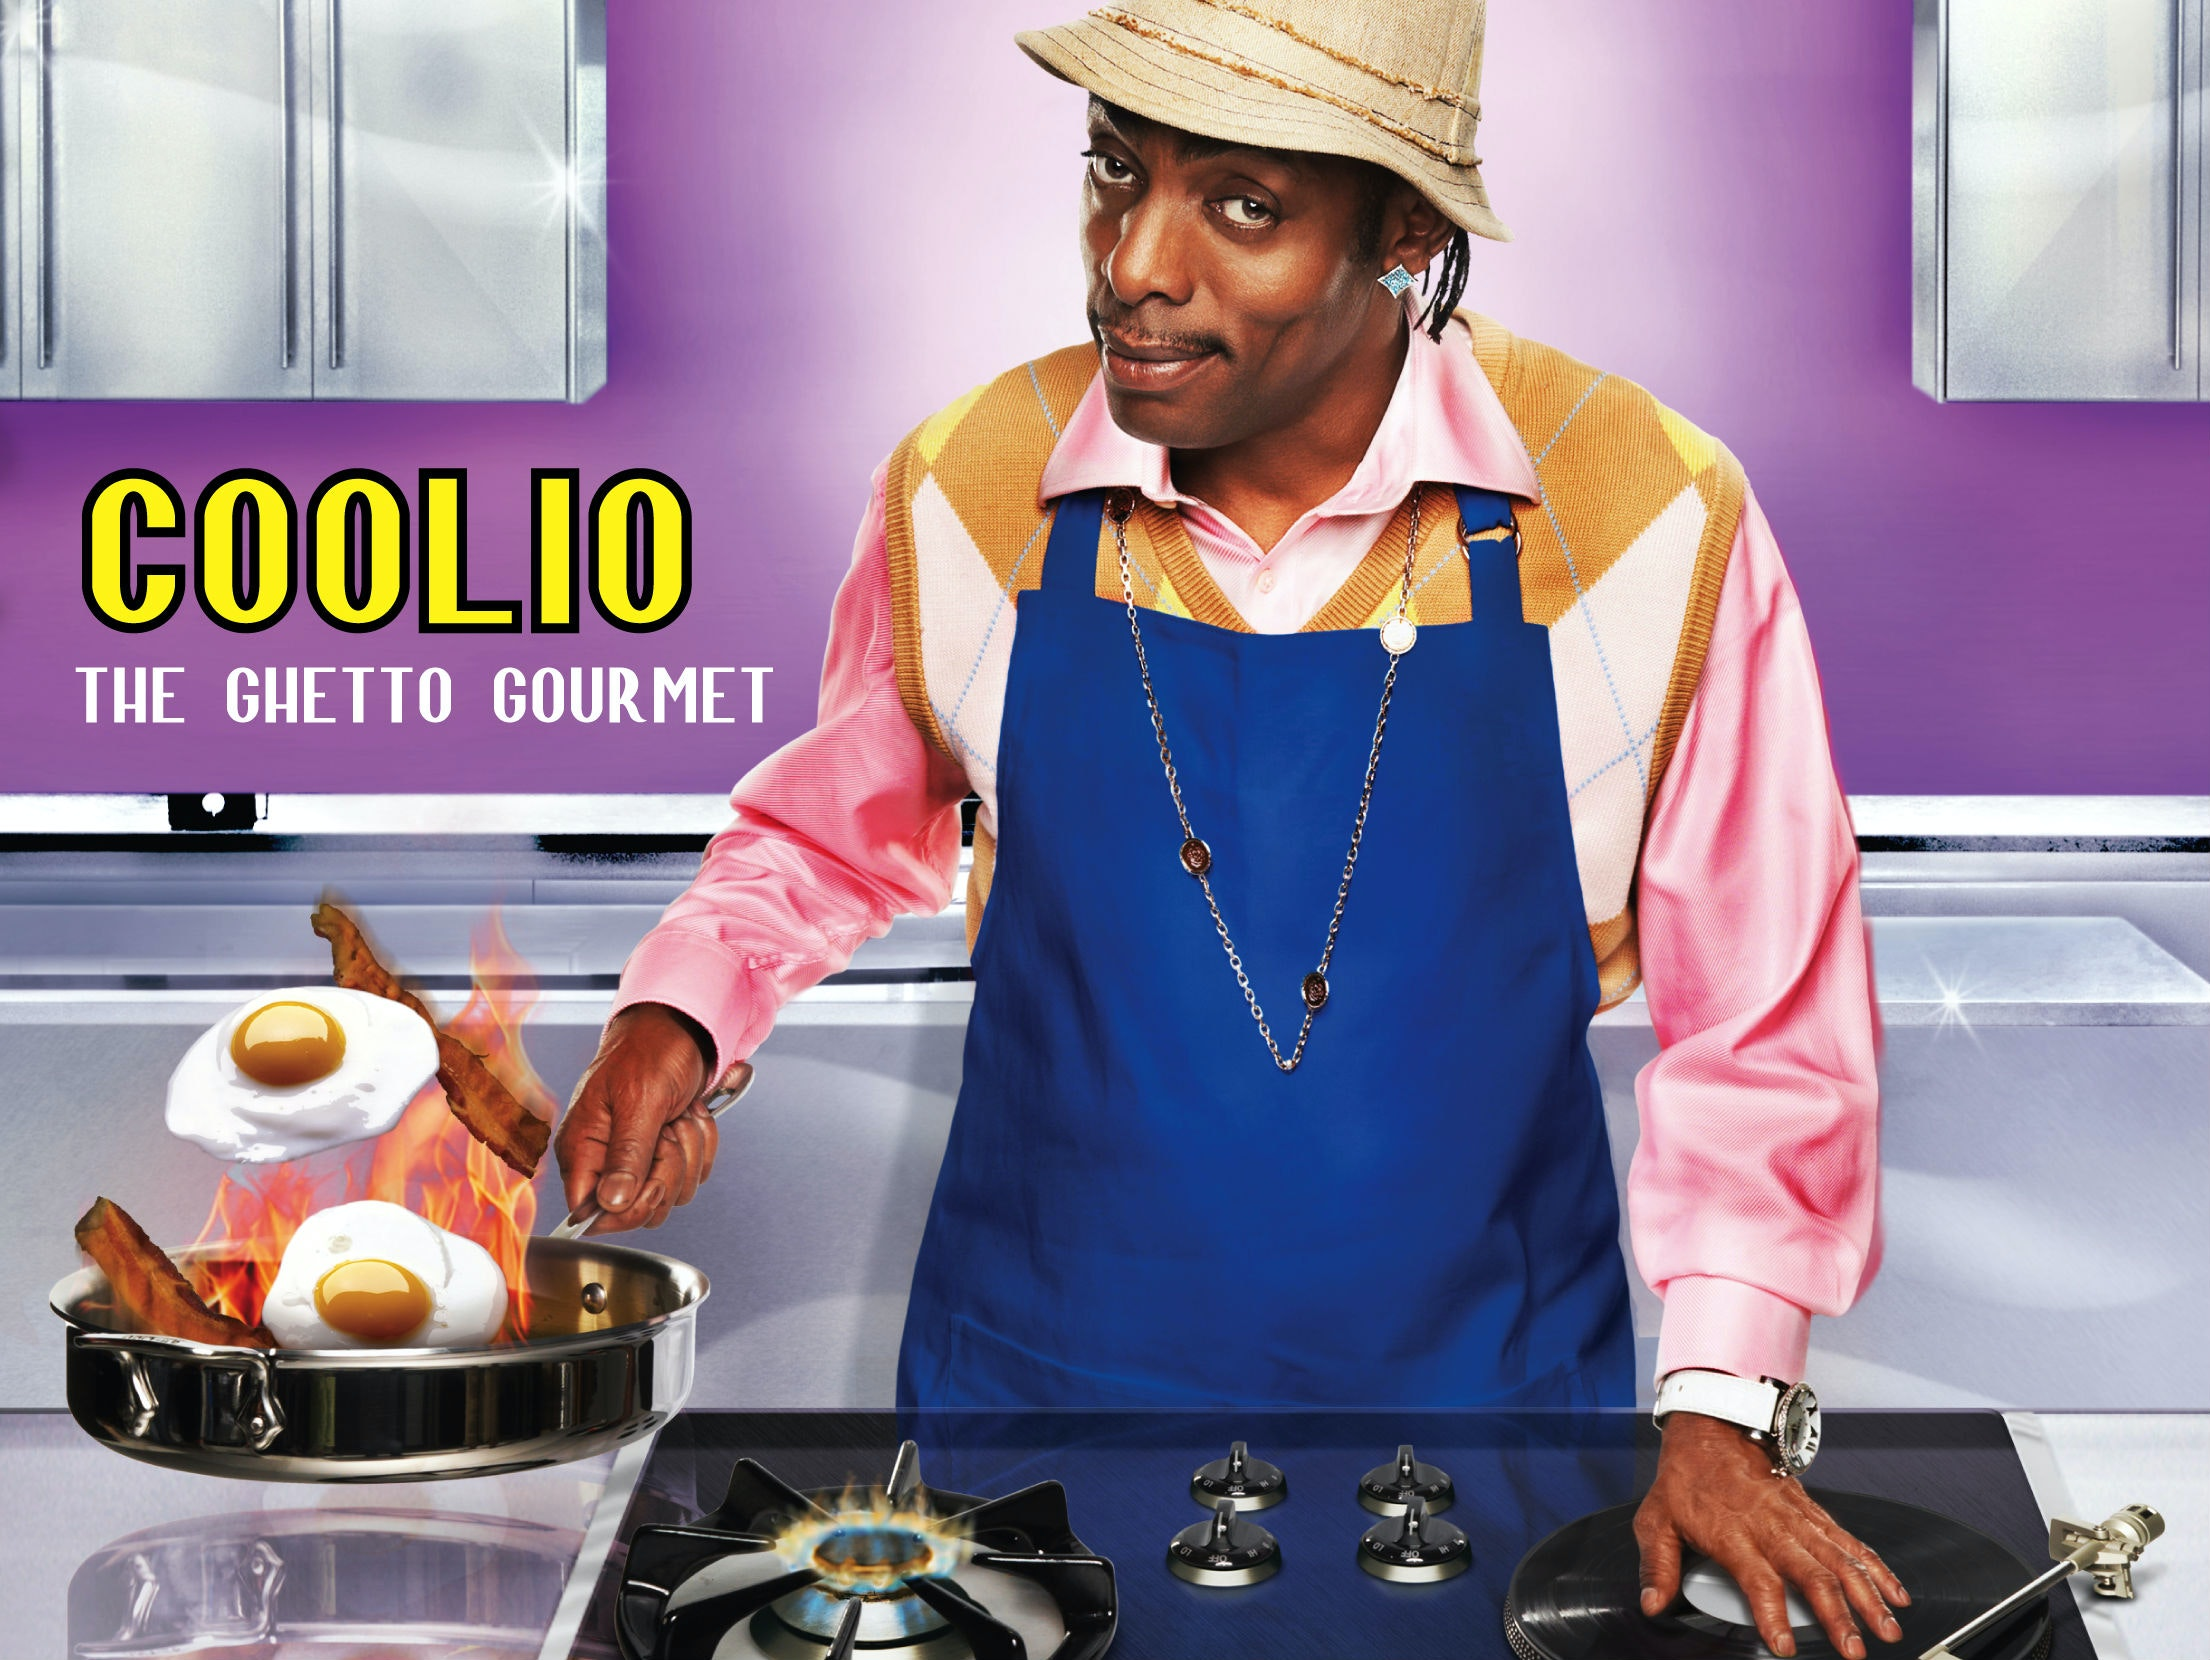 This cookbook that waswritten by Coolio